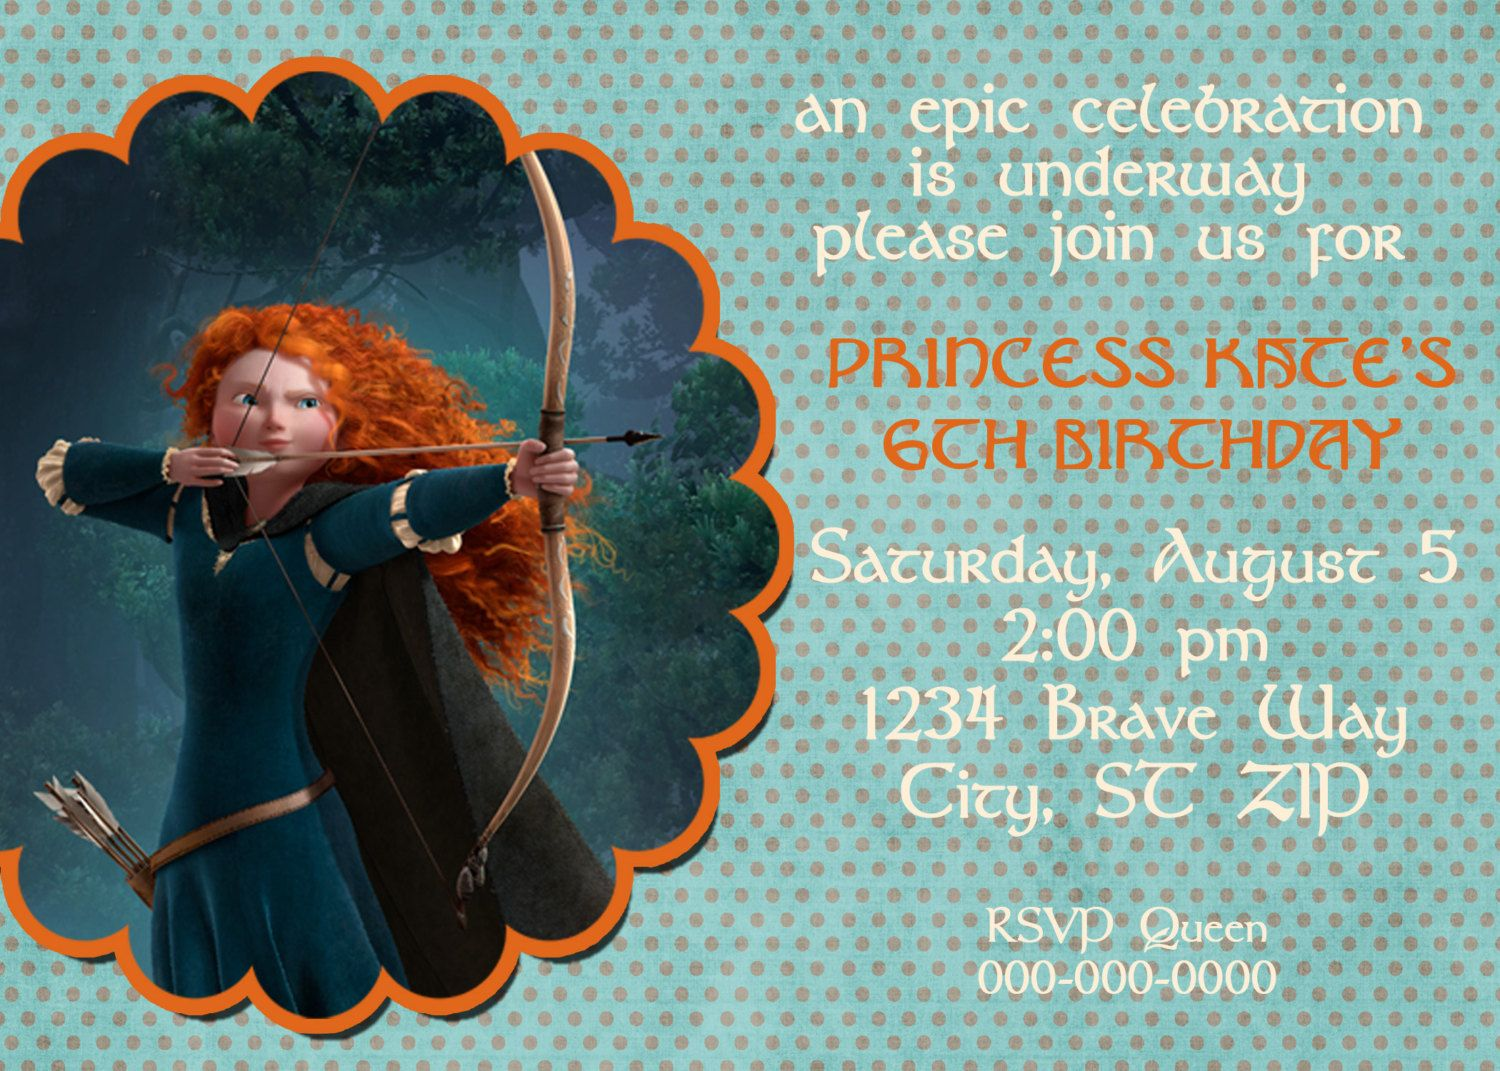 disney princess party invitation templates%0A commercial real estate resume